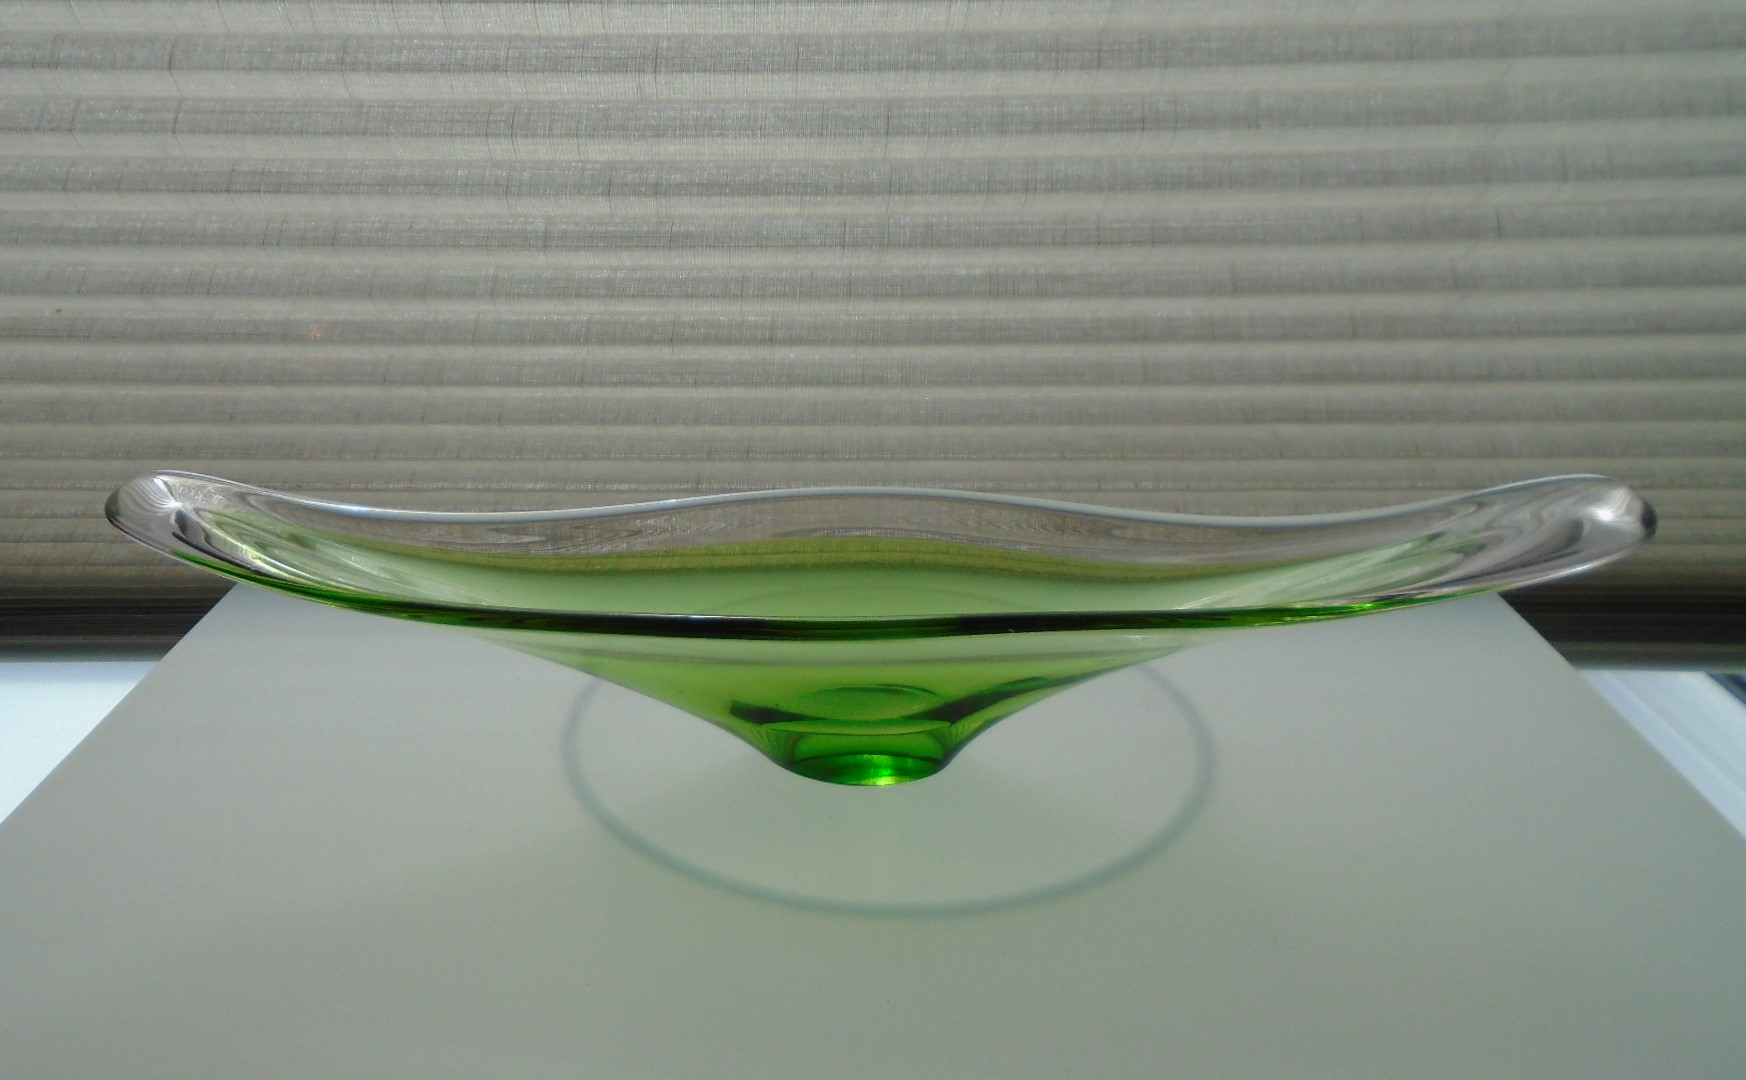 Vintage  Mid 20th Century Murano Glass long dish in apple green and clear glass with gently curving rim.